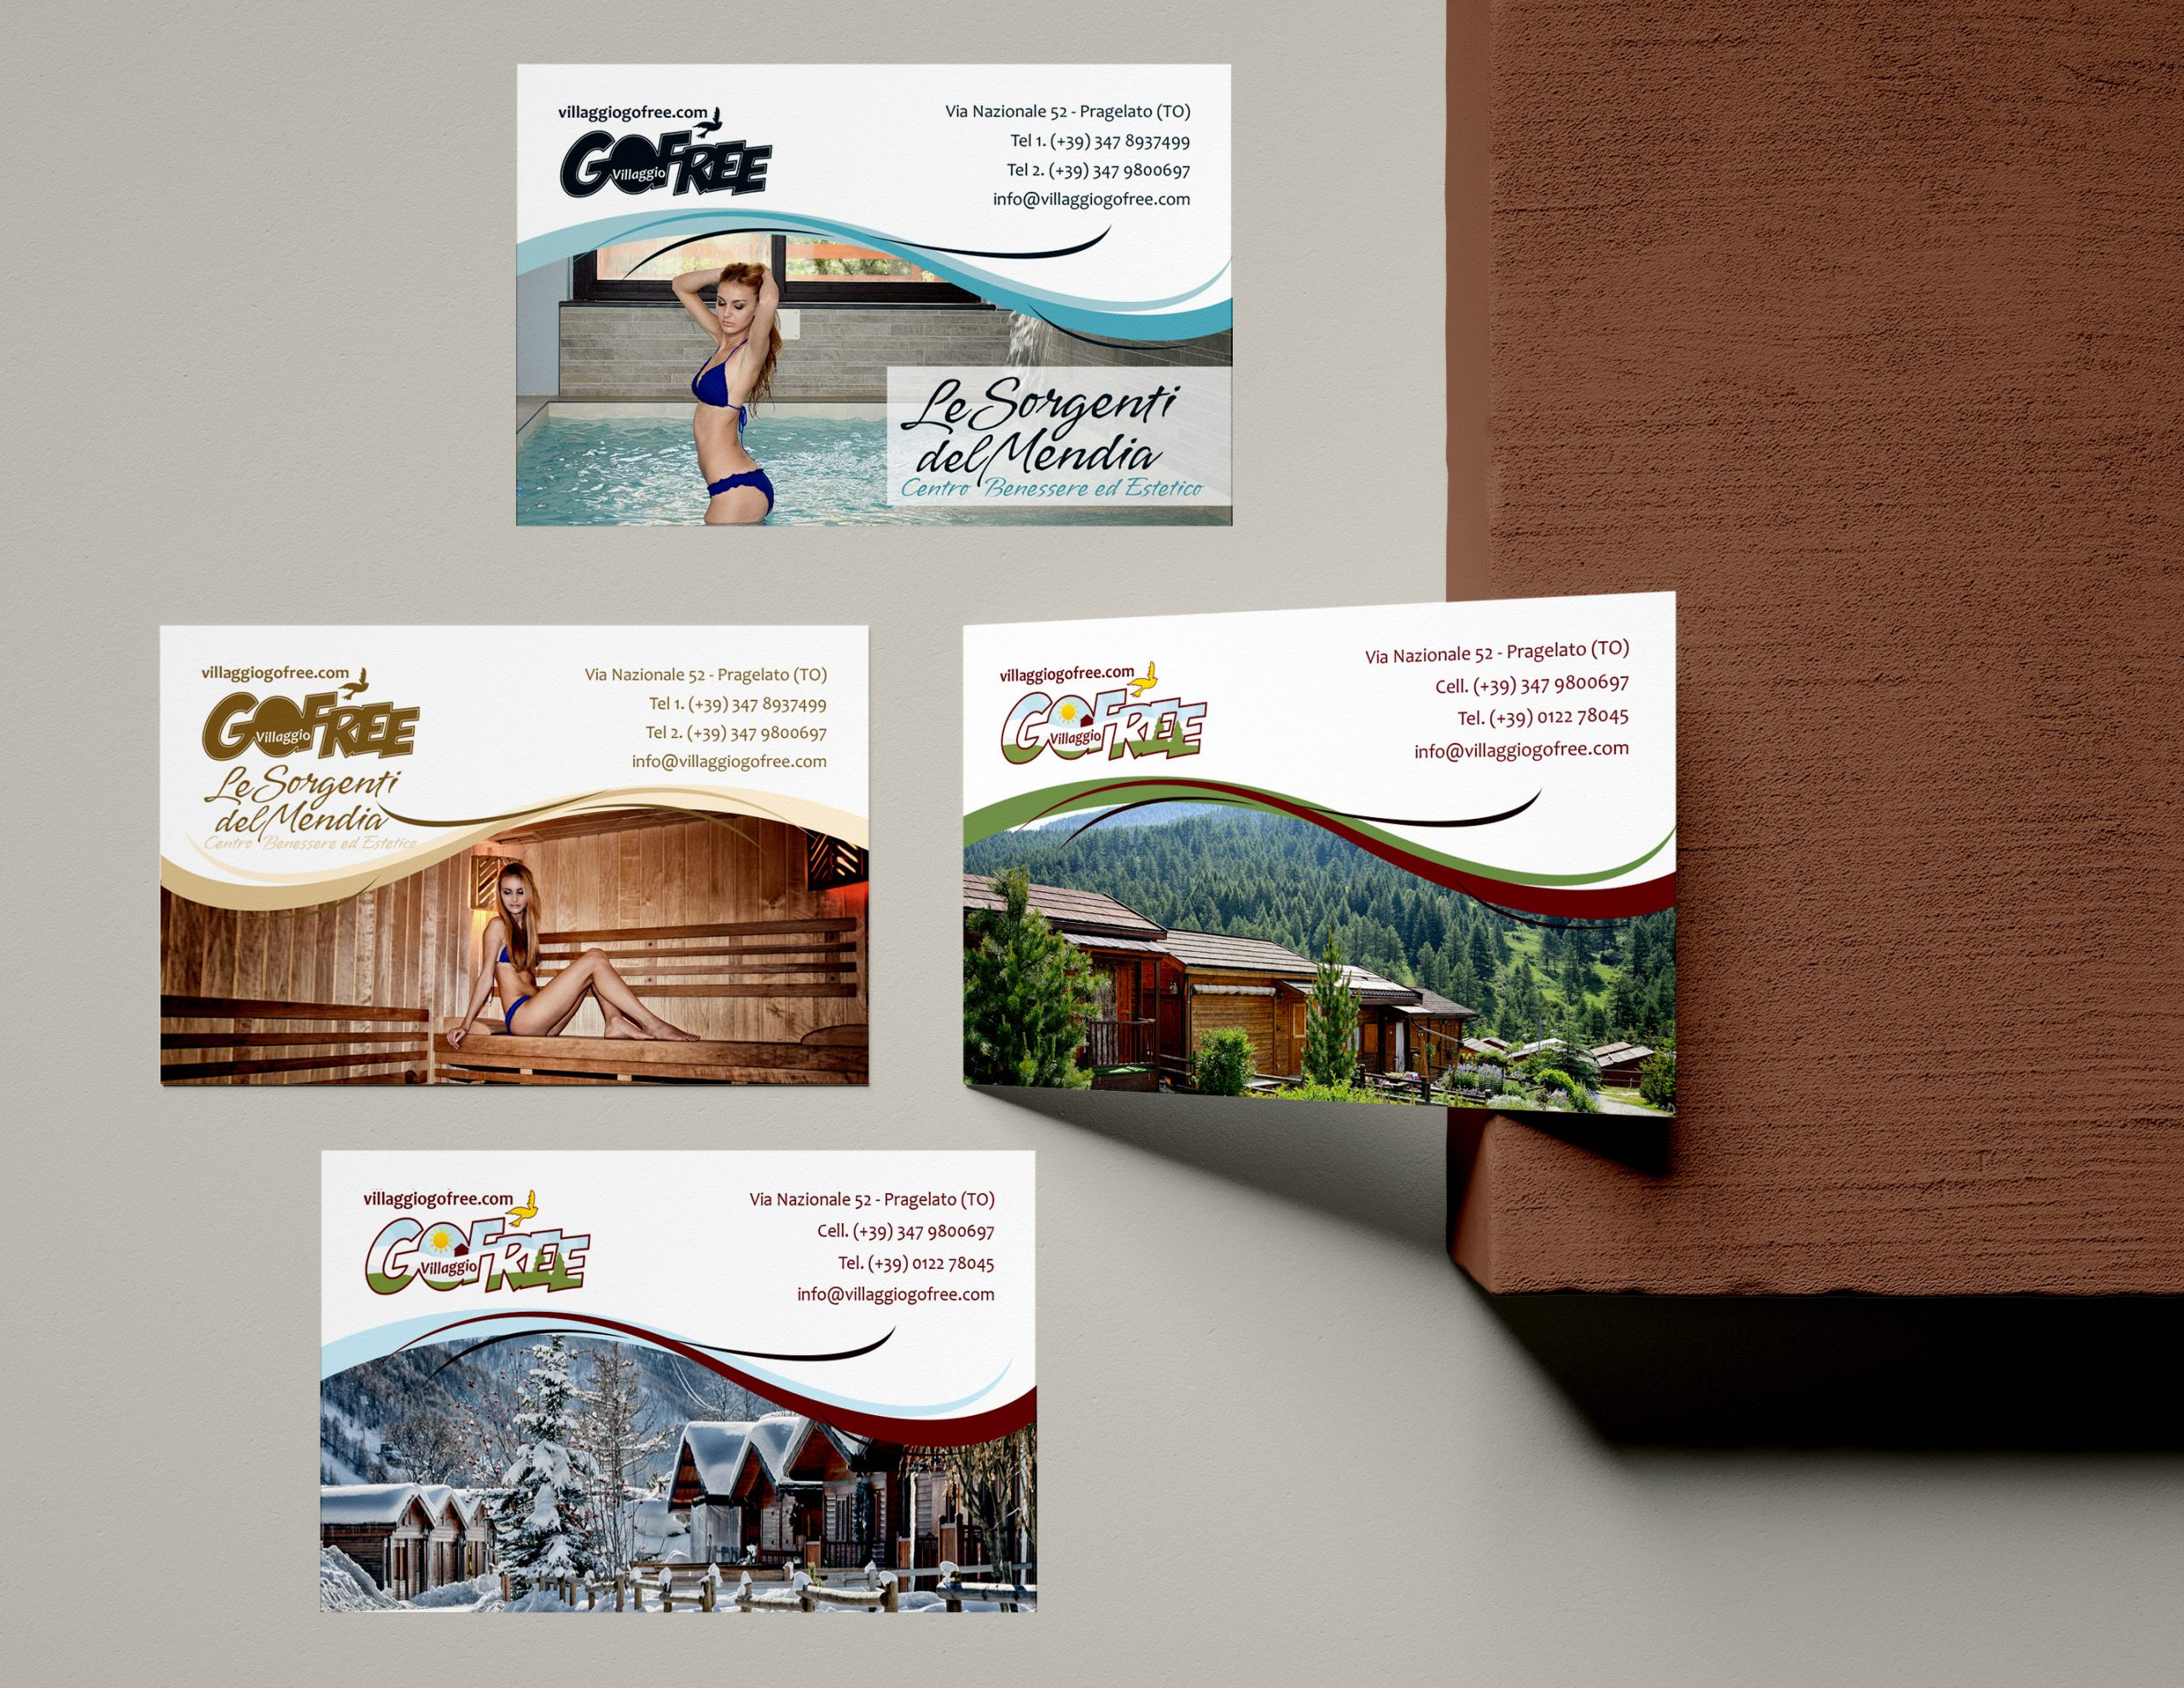 Gofree Business cards